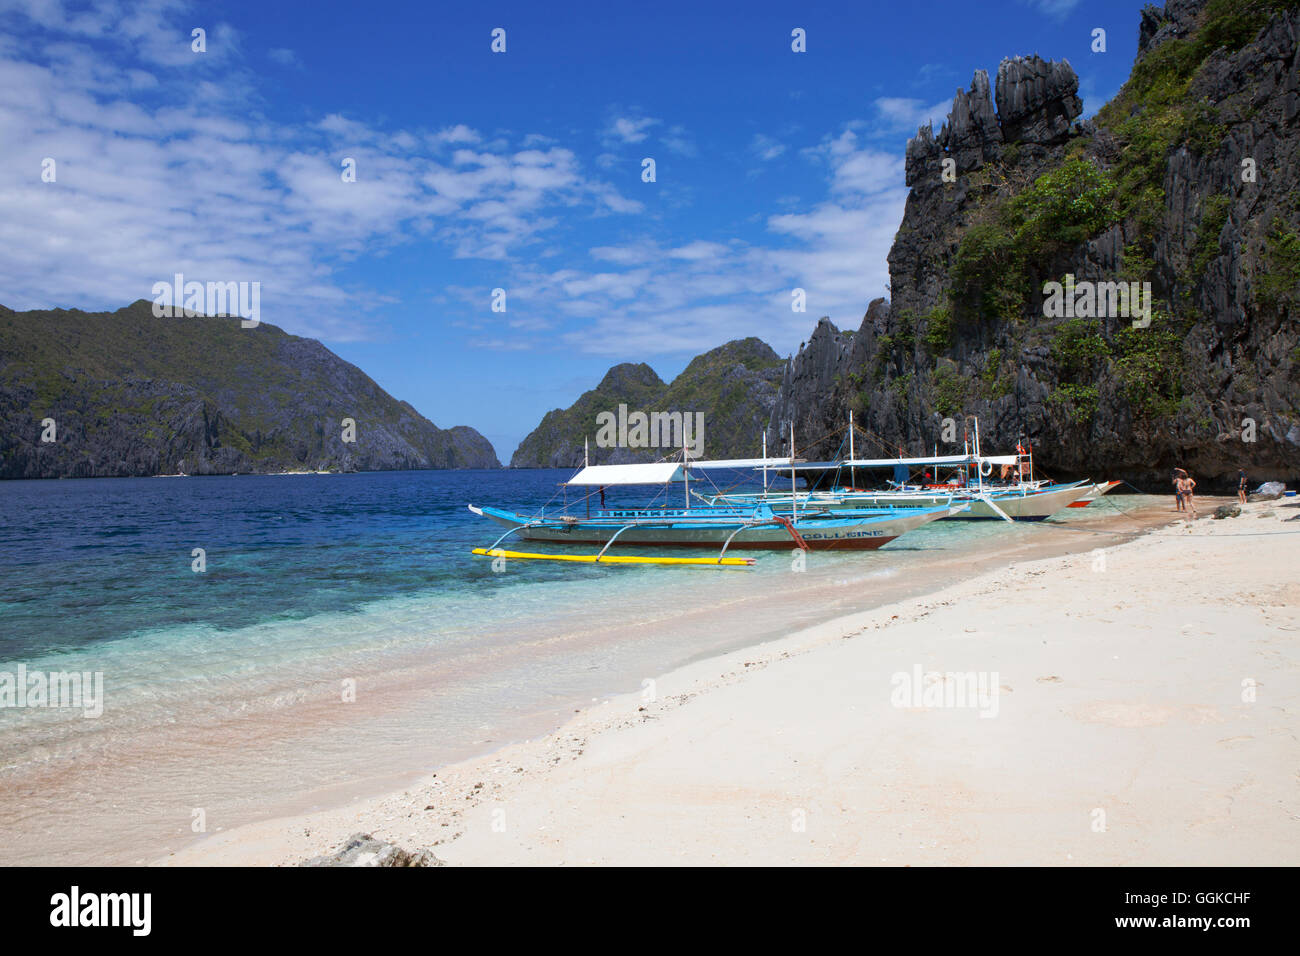 Tropical beach in the archipelago Bacuit near El Nido, Palawan Island, South China Sea, Philippines, Asia - Stock Image